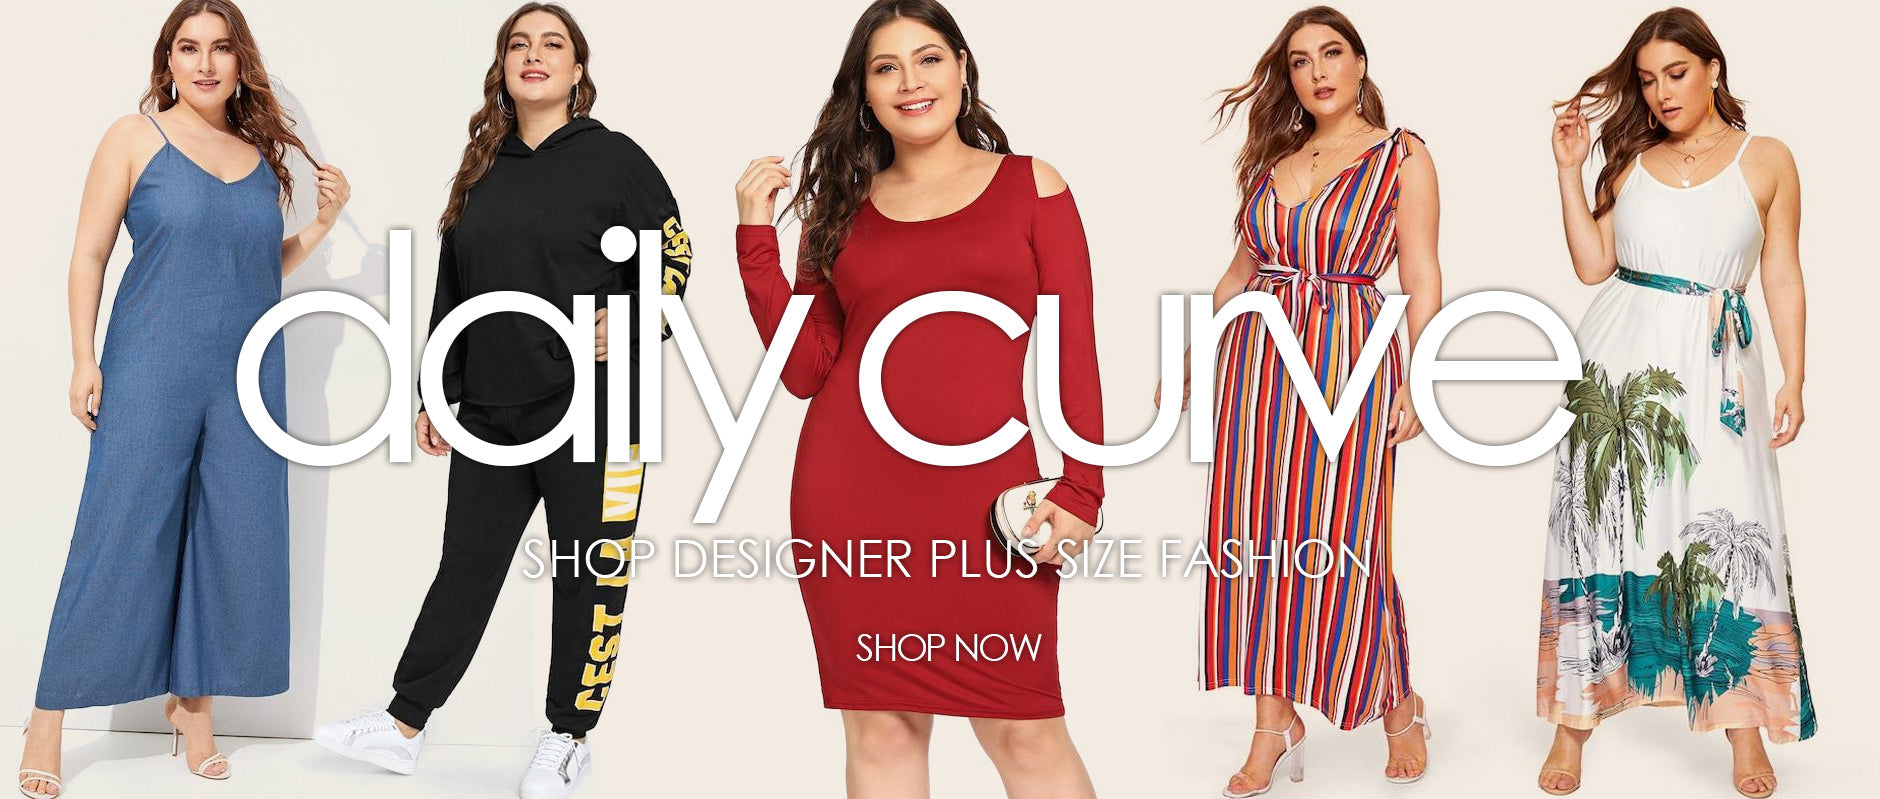 9c87861ba87 Welcome to Plussizefix - Shop Plus Size Clothing